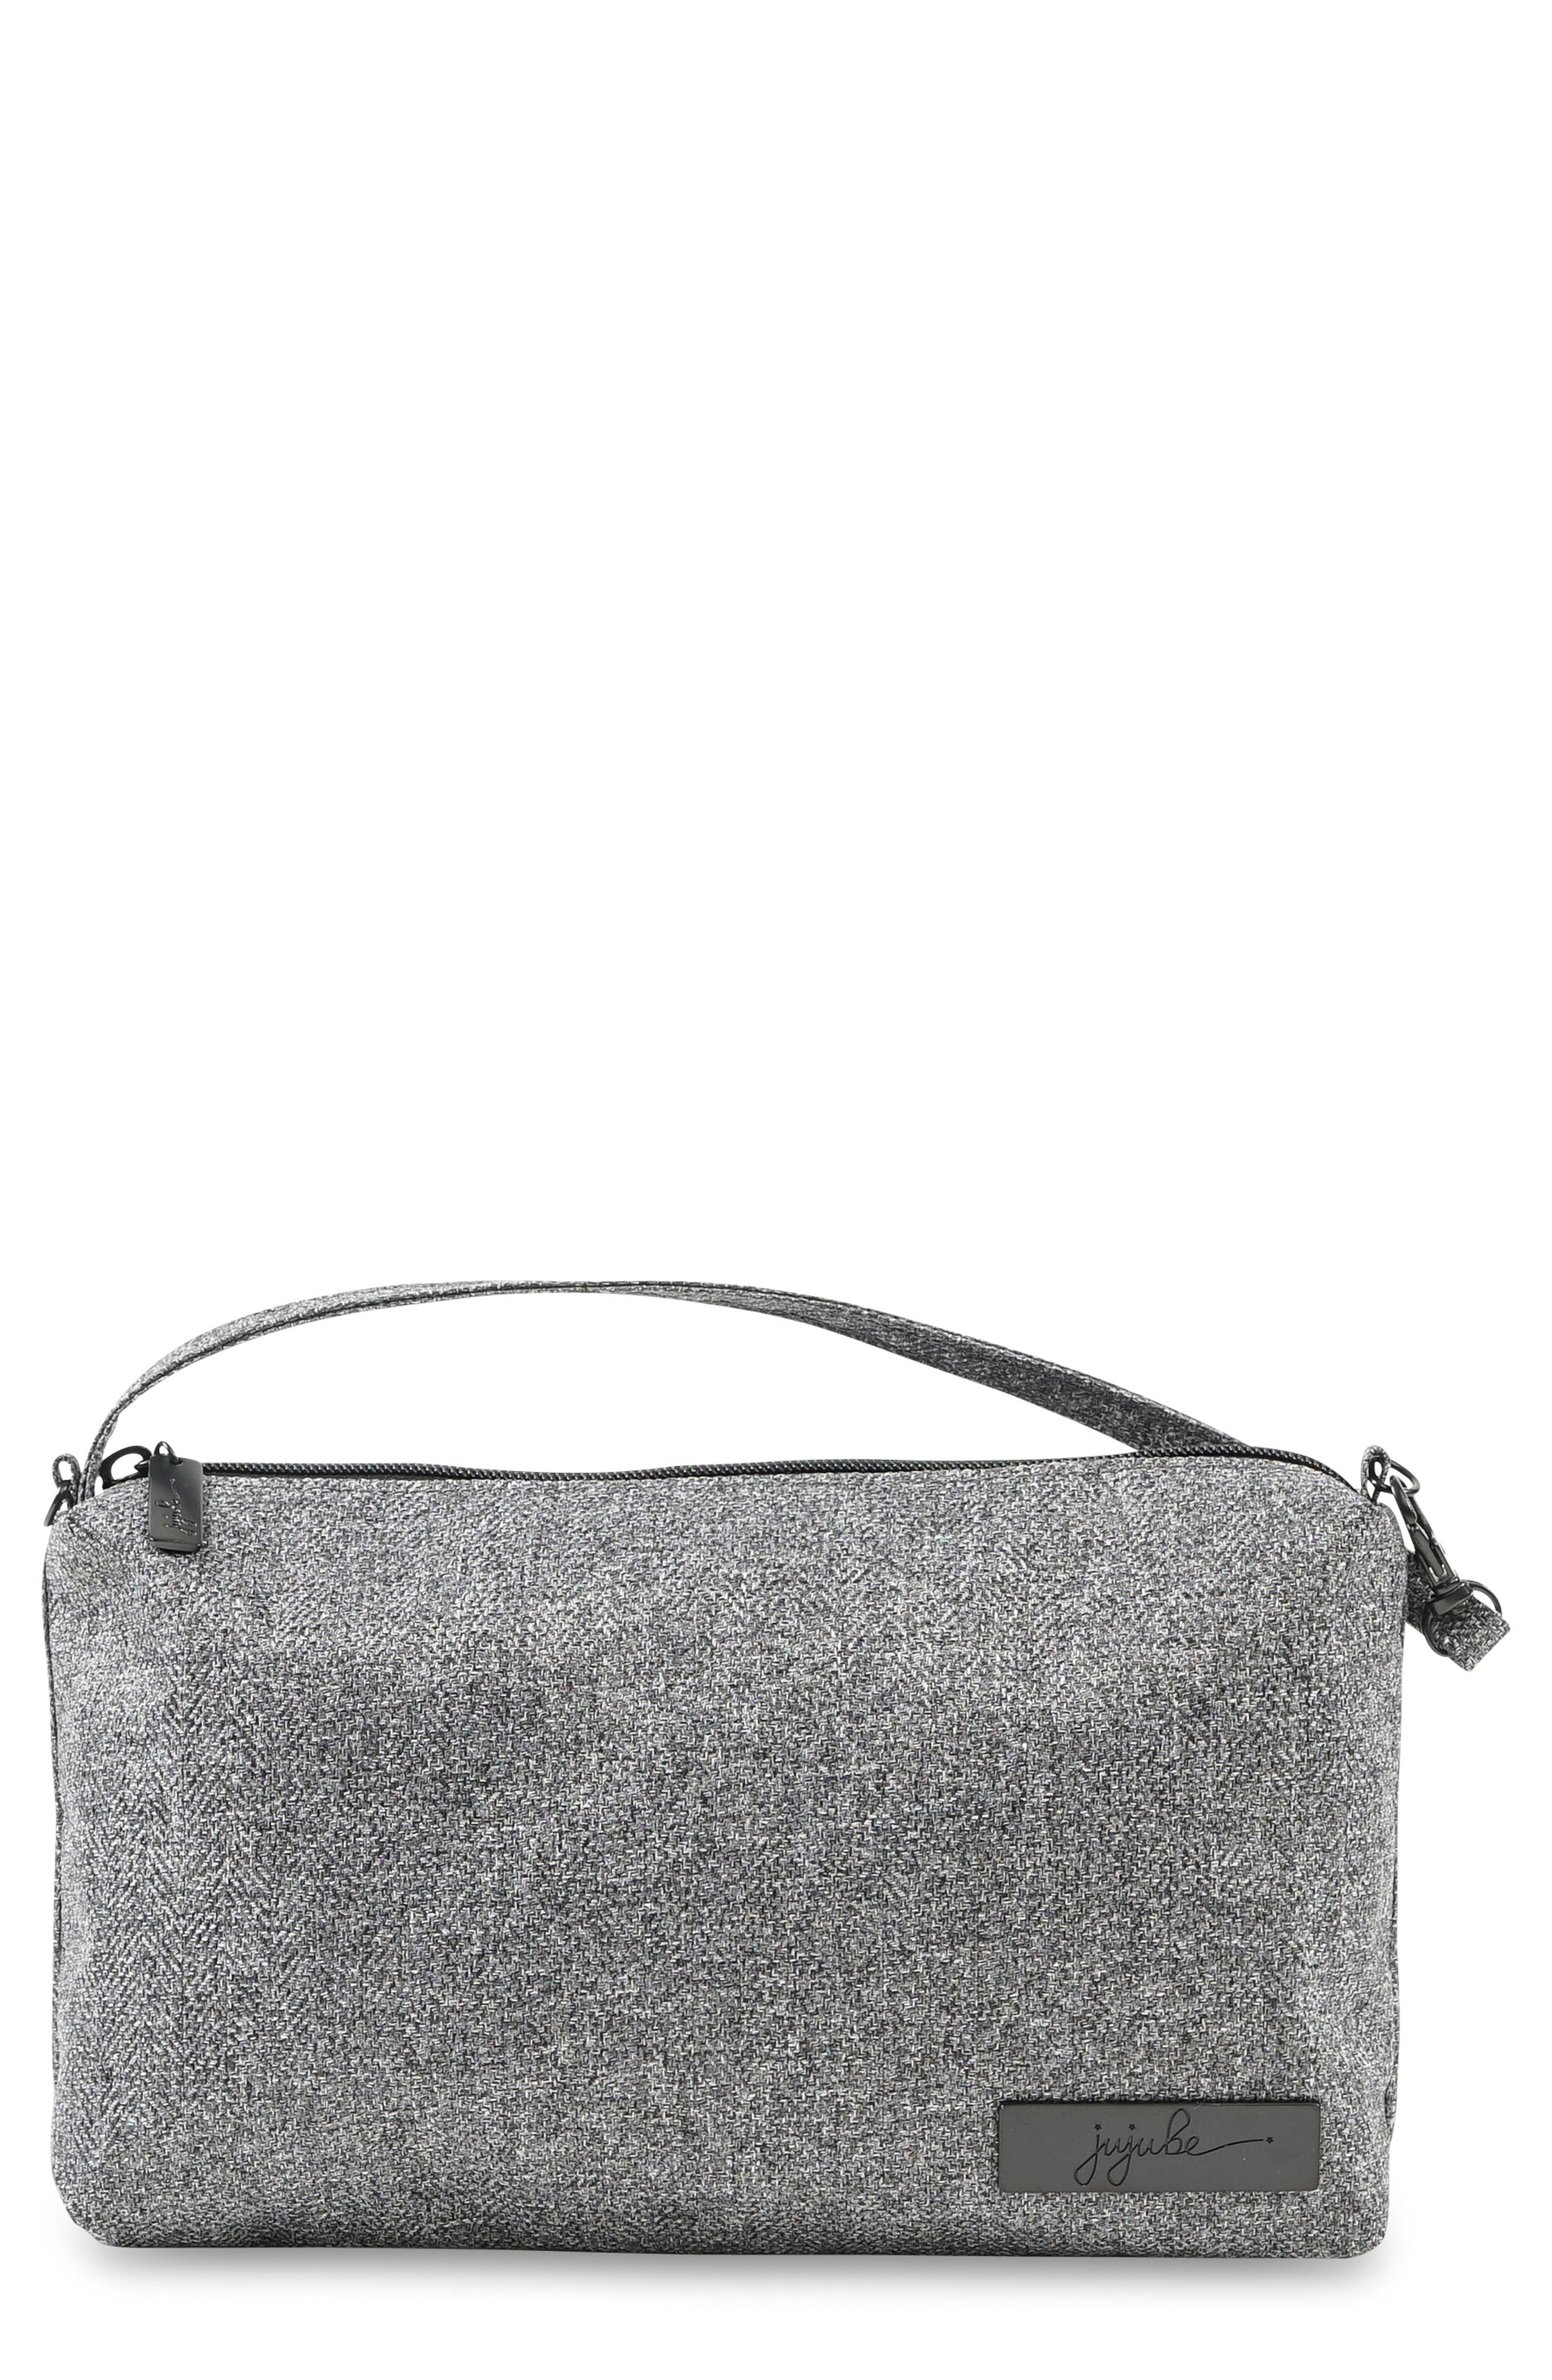 'Be Quick - Onyx Collection' Wristlet Pouch,                         Main,                         color, 035